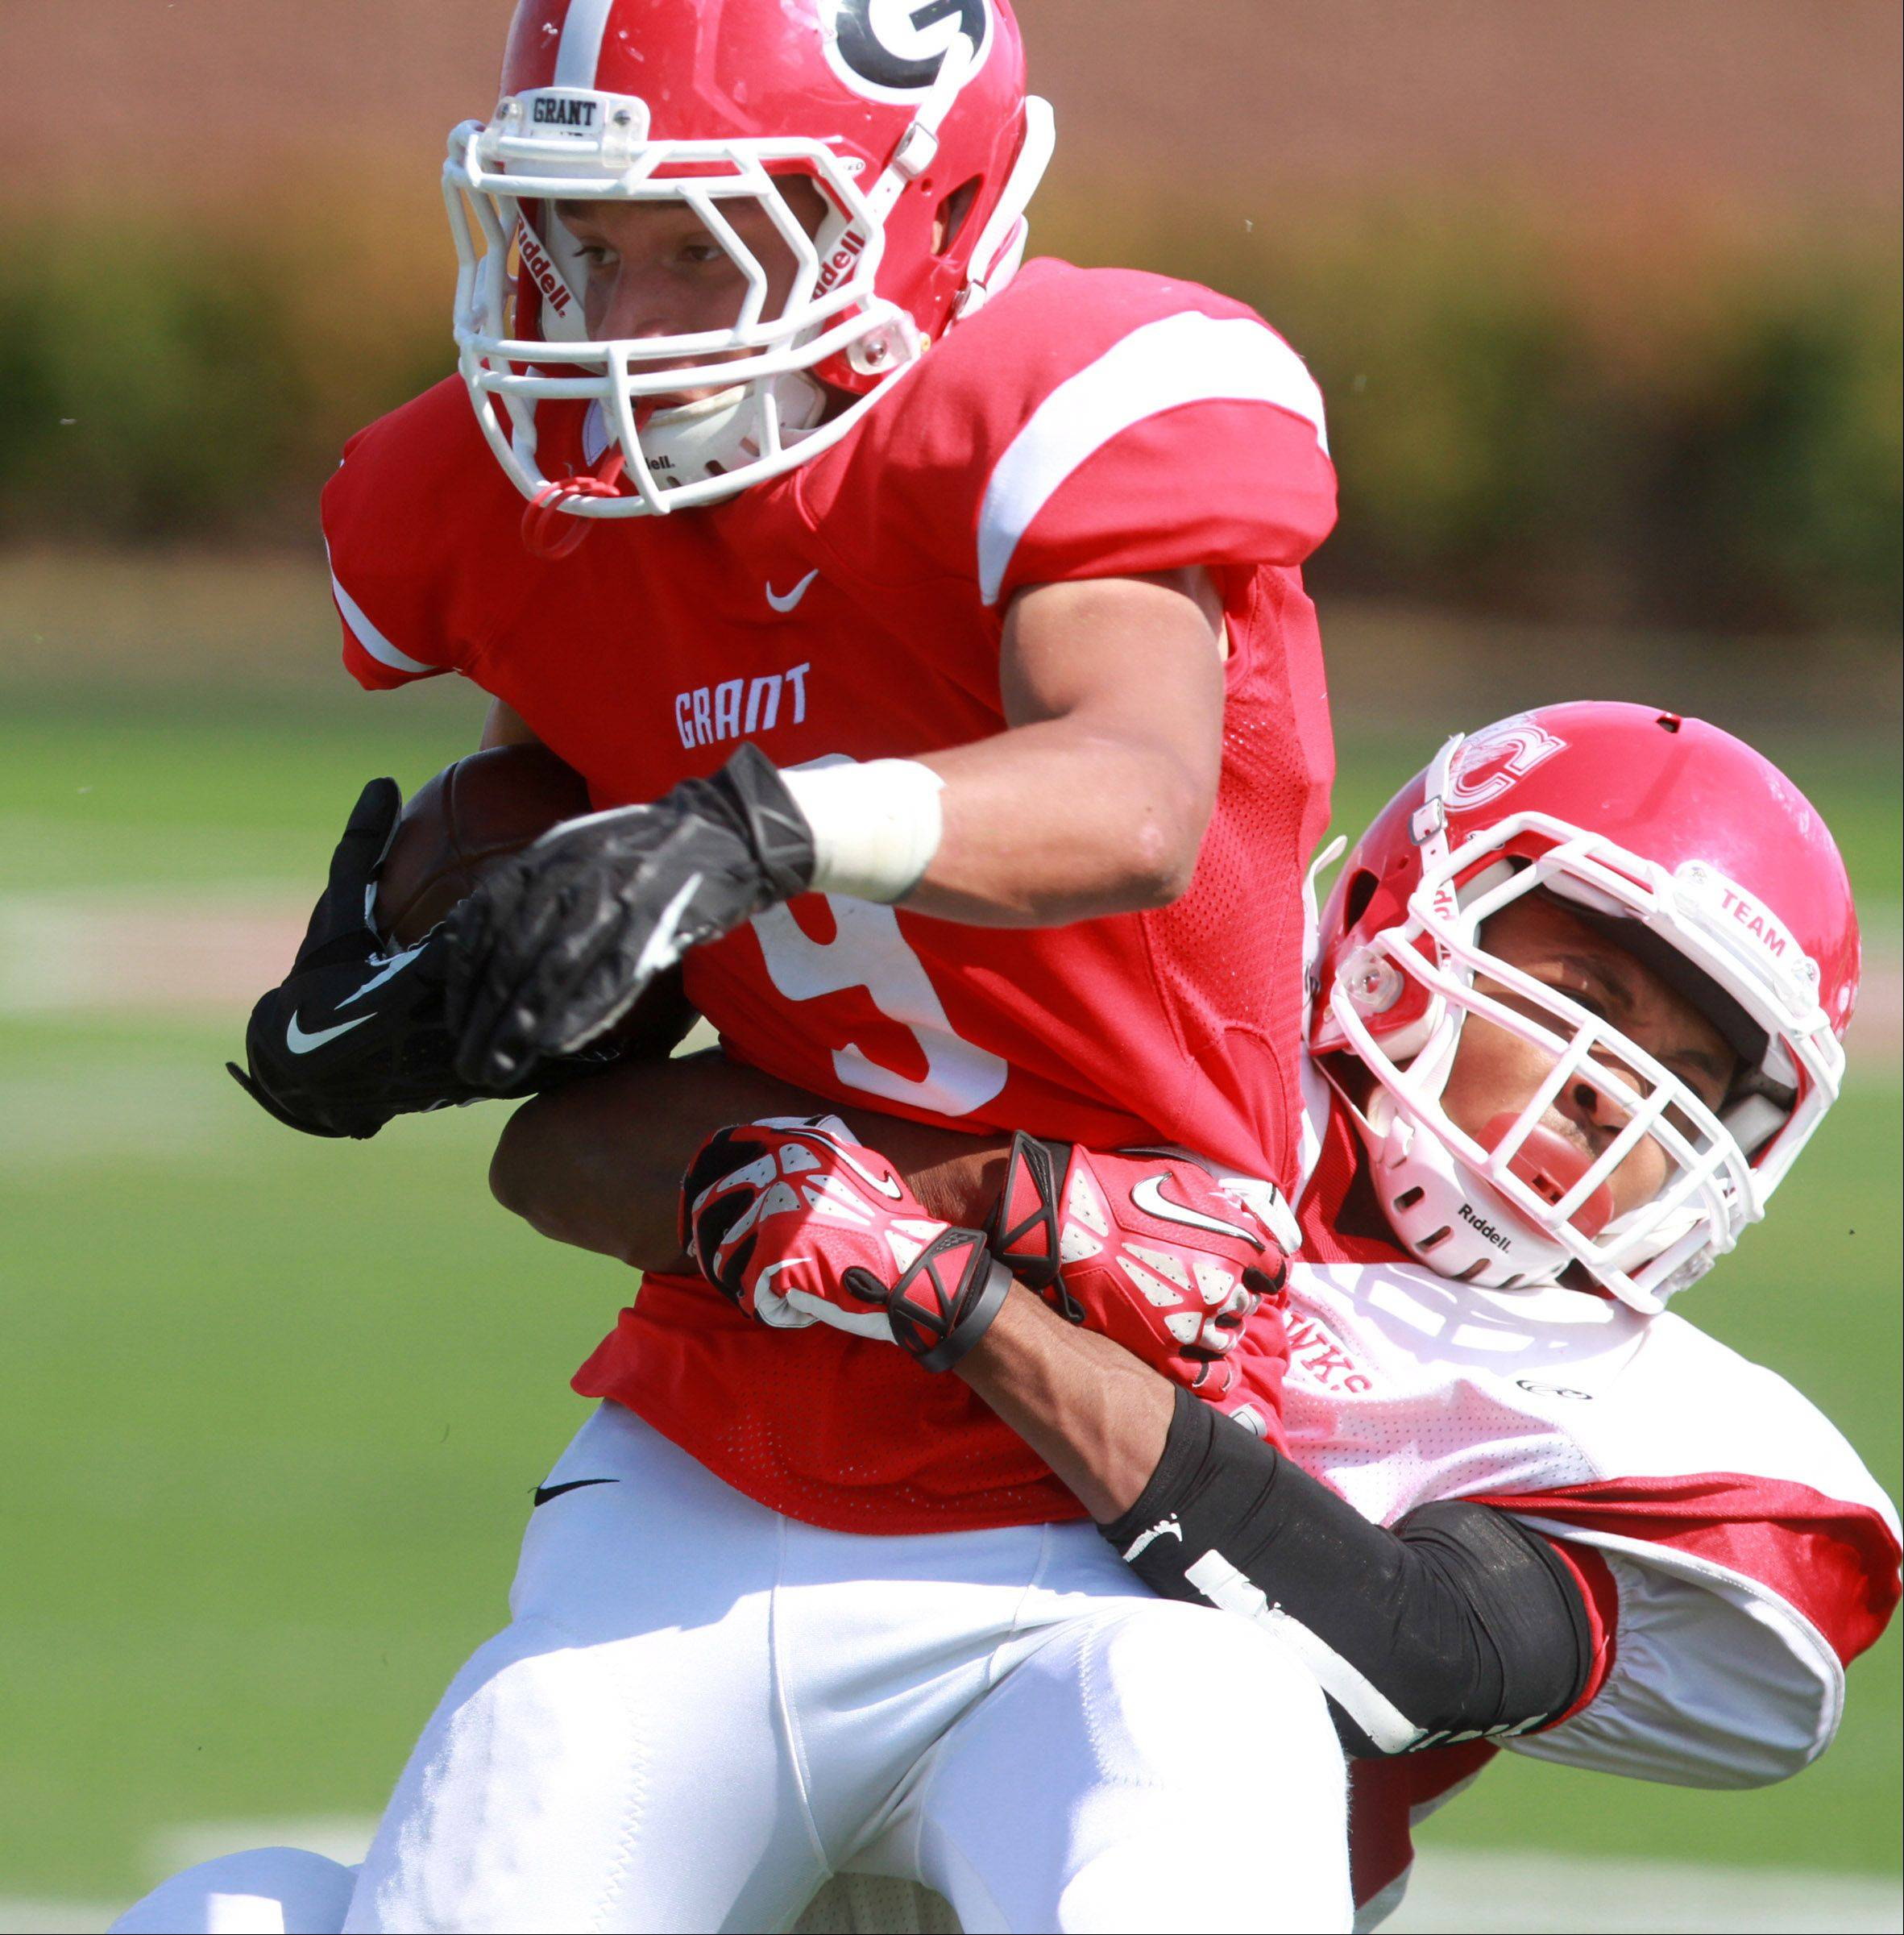 Grant running back Jeremy Bredwood is pulled down by a North Chicago defender at Grant on Saturday.